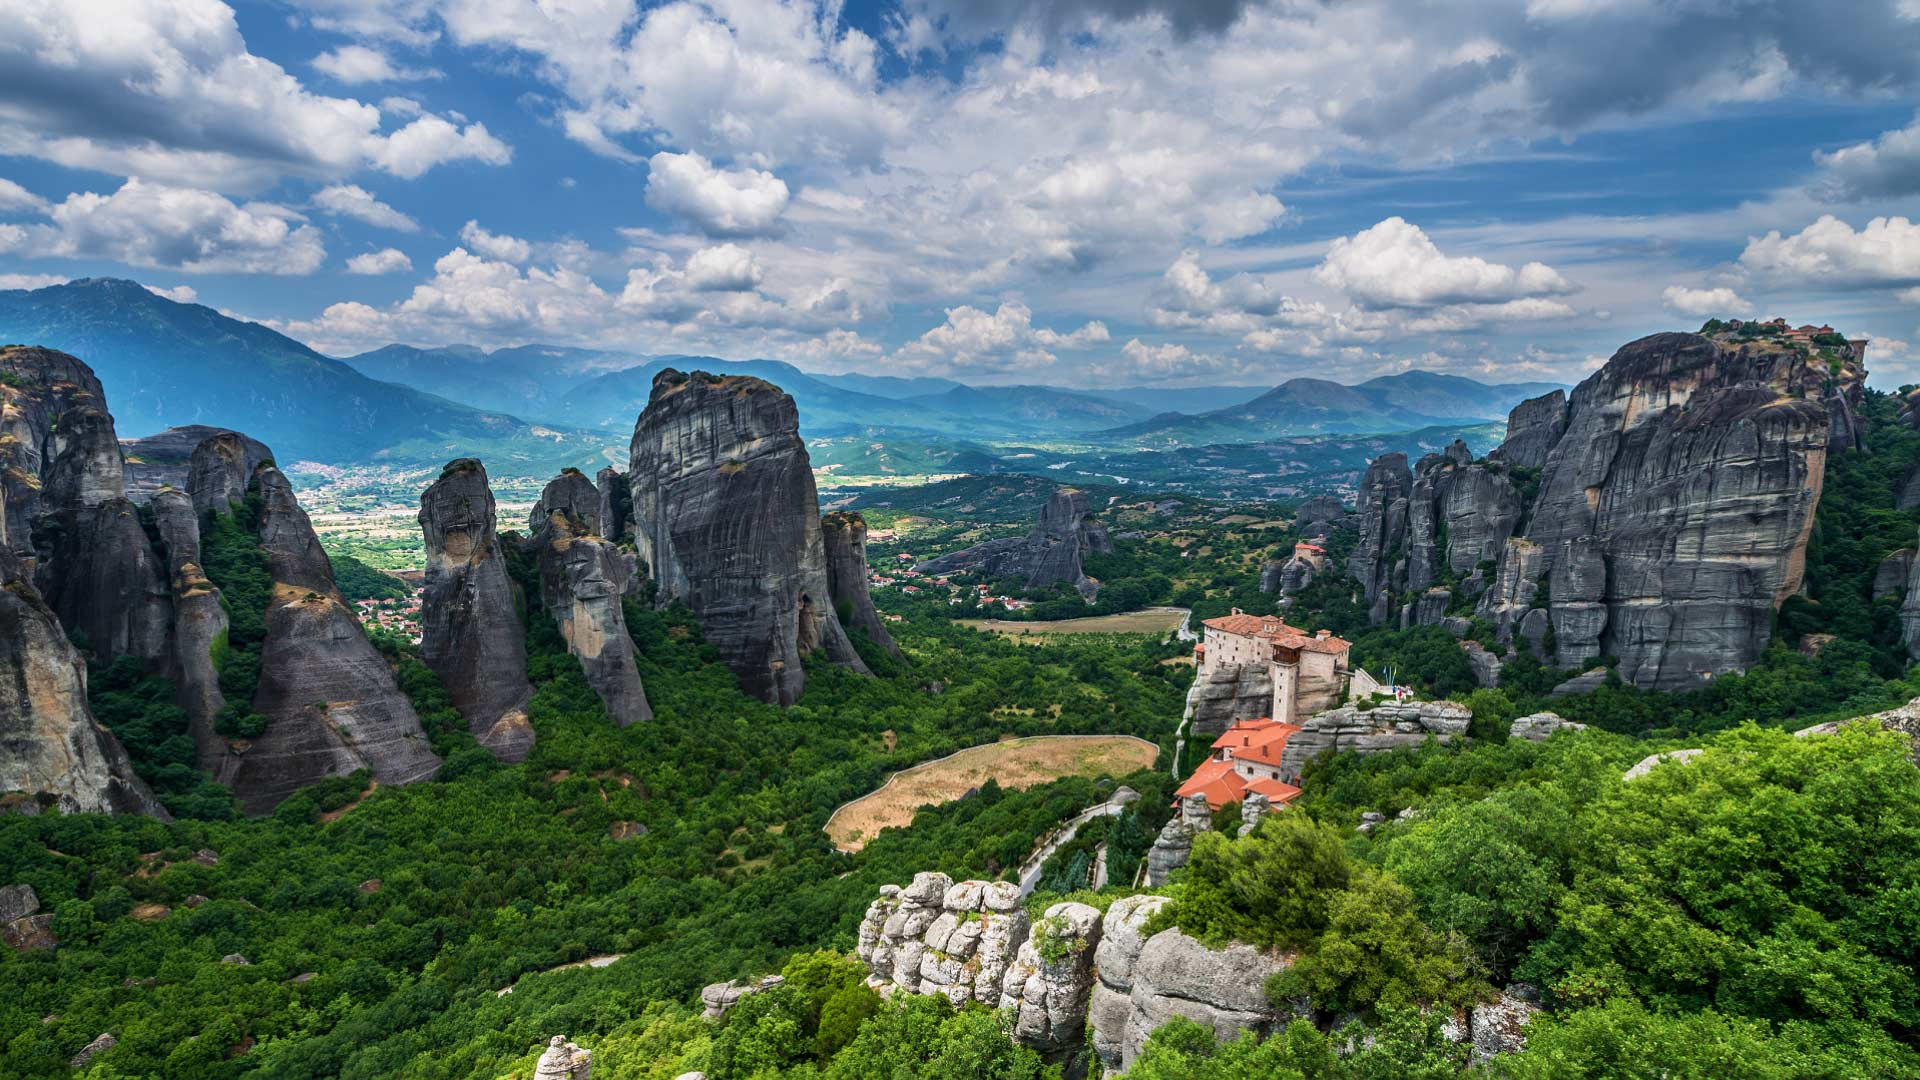 Meteora_Greece_FF_768_HD_EN-US473445763.jpg